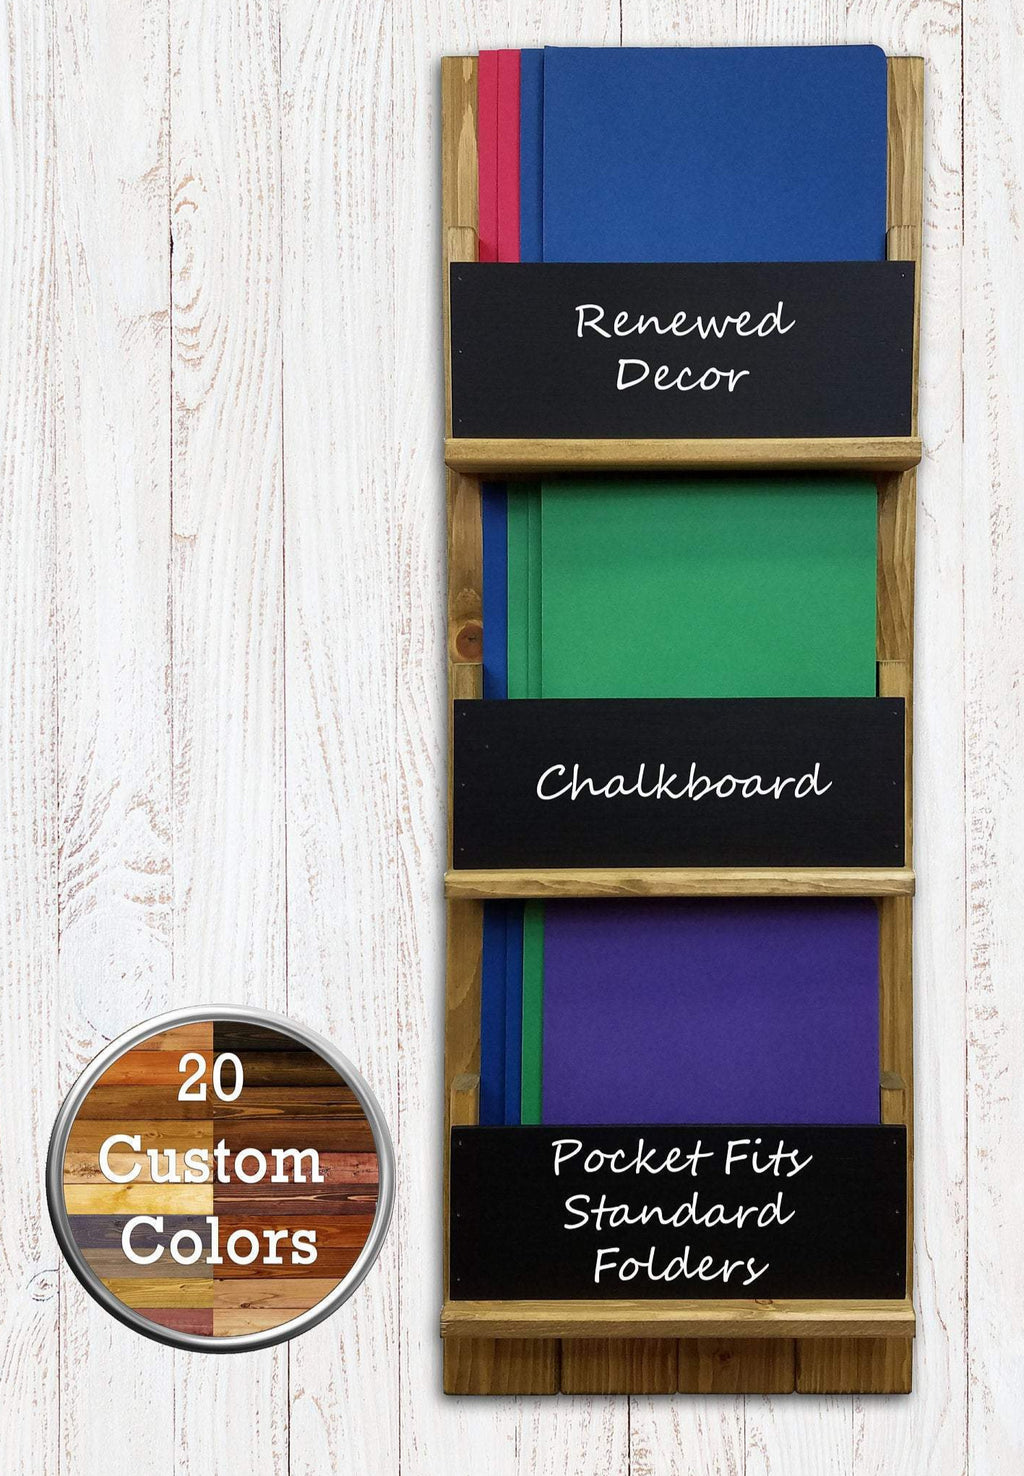 Sydney Paper, Magazine or Folder Organizer with Chalkboards Customize with up 4 key hooks, Available in 20 Colors Shown in Driftwood - Renewed Decor & Storage